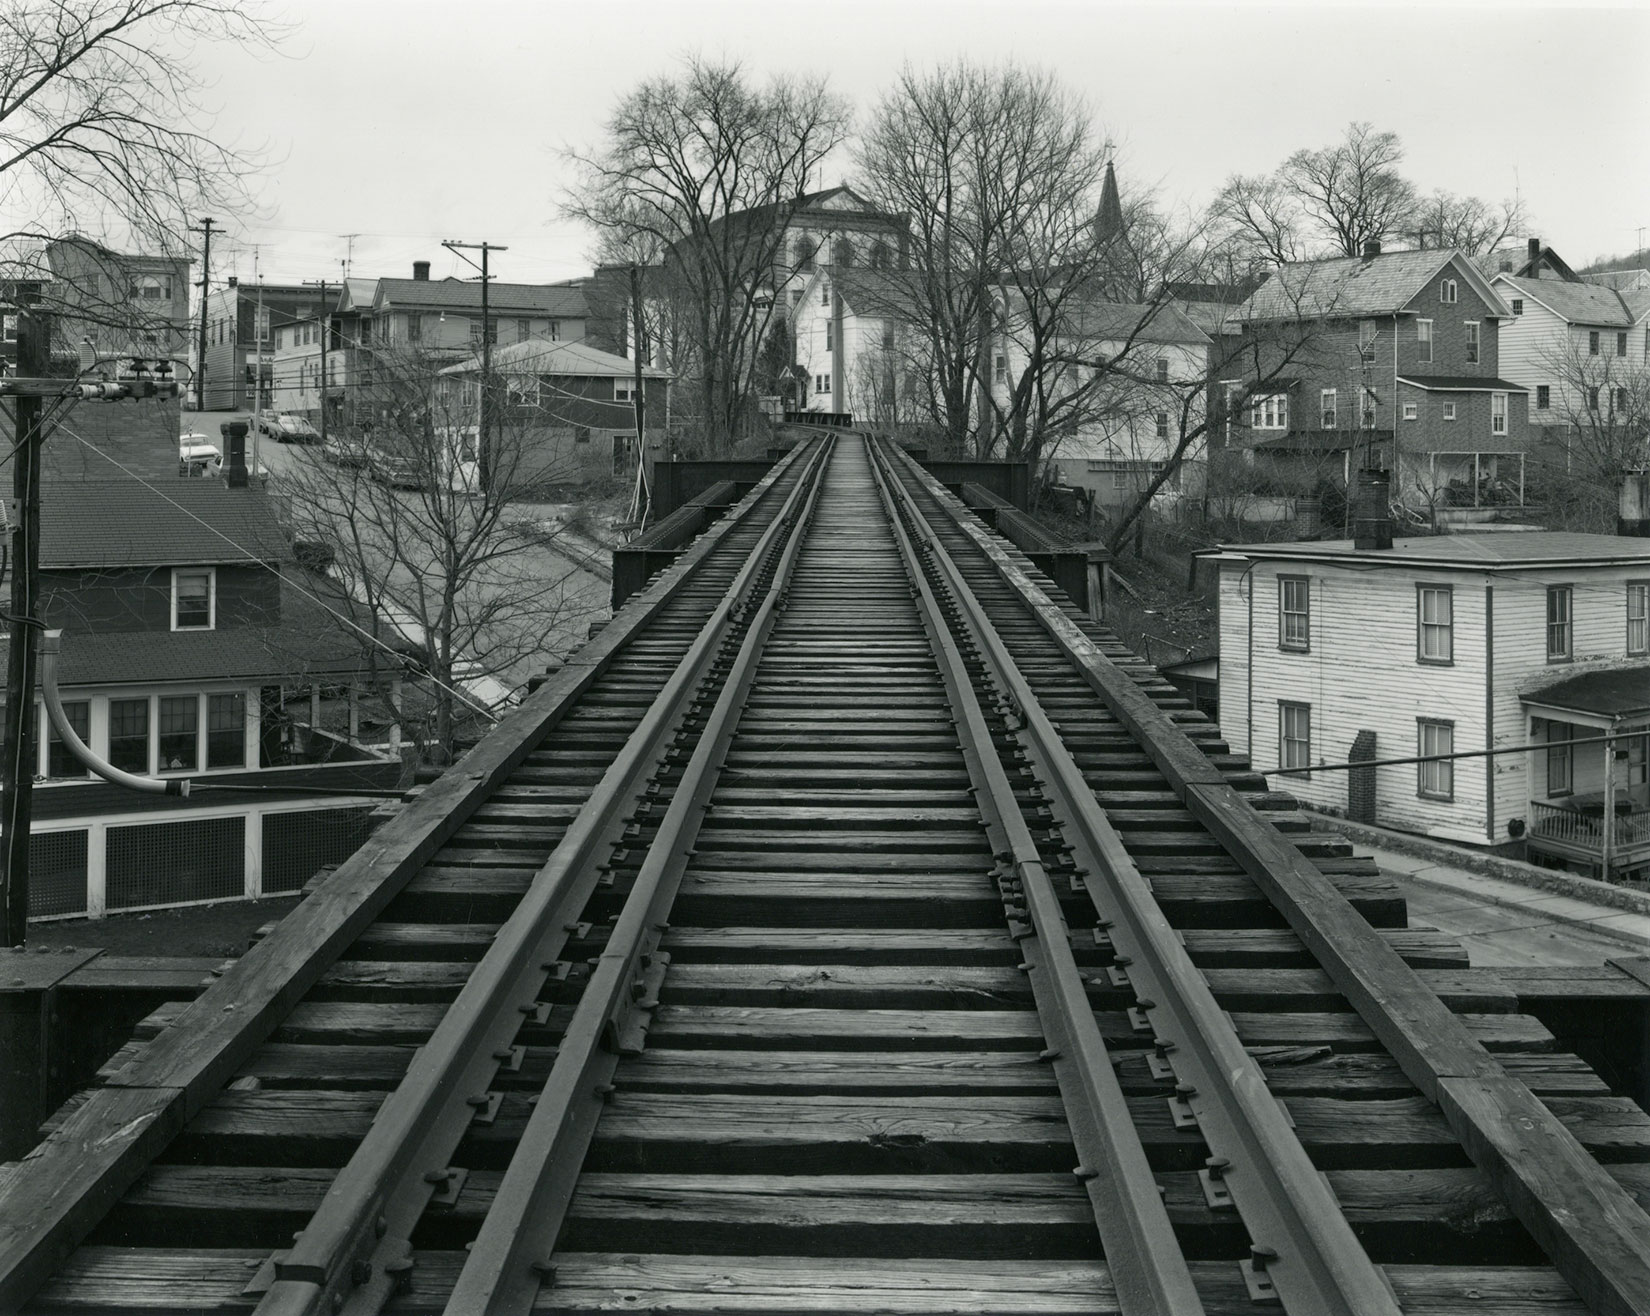 Urban Landscapes, Joseph Bellows Gallery, Calif.: Sept. 10 - Oct. 28                                                                                              (Caption: George Tice, Railroad Bridge, High Bridge, N.J., 1974)